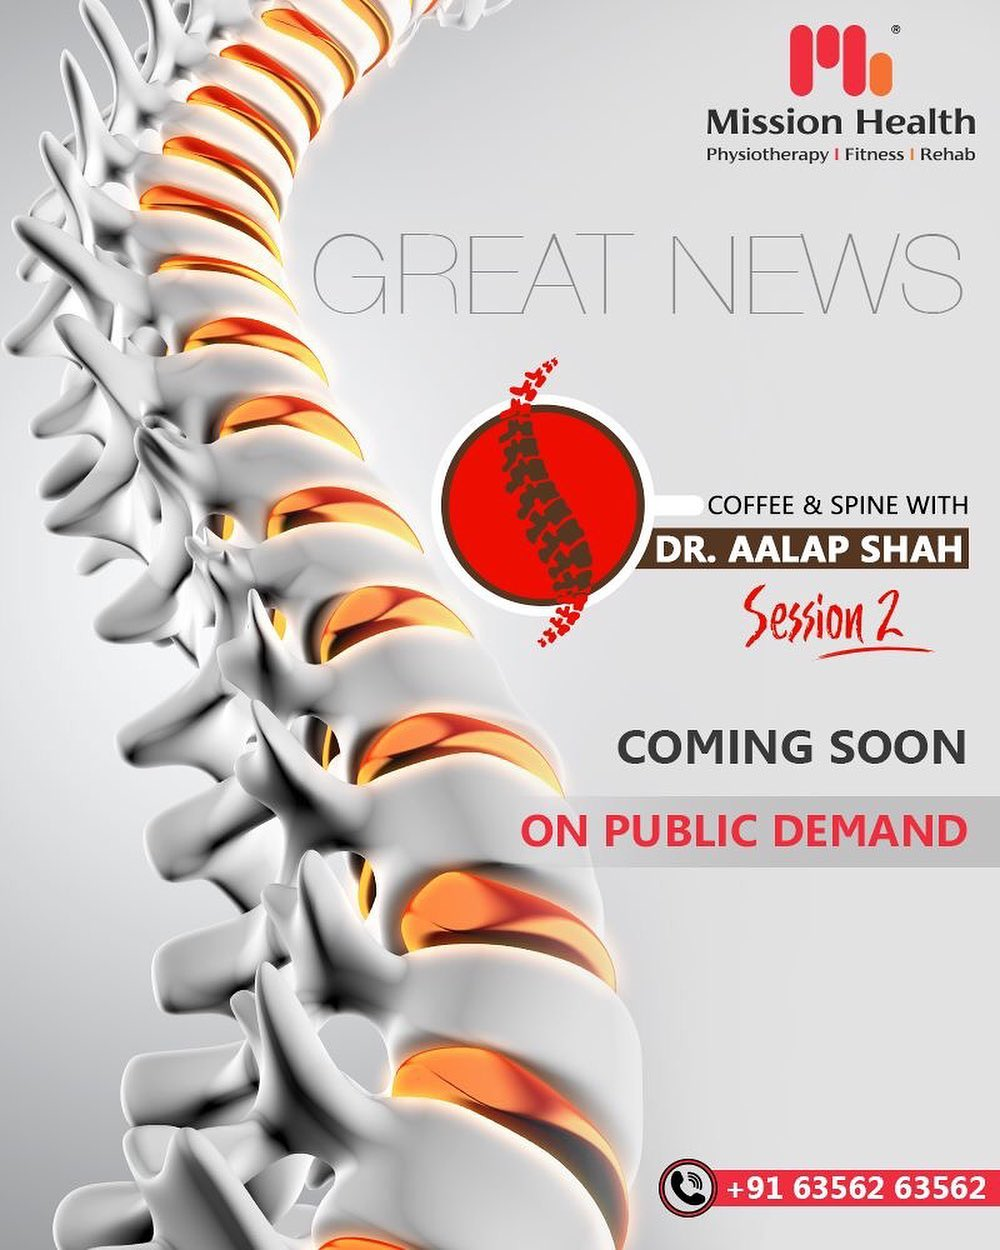 Coffee & Spine with Dr. Alap Shah Session 2 Coming Soon  On Public Demand  For more details, keep reading this space... Call: +916356263562 Visit: www.missionhealth.co.in  #CoffeeAndSpineWithDrAalapShah #DrAalapShah #SuperSpecialitySpineClinic #SpineClinic #BackPain #NeckPain #SlippedDisc #MissionHealth #MissionHealthIndia #AbilityClinic #MovementIsLife